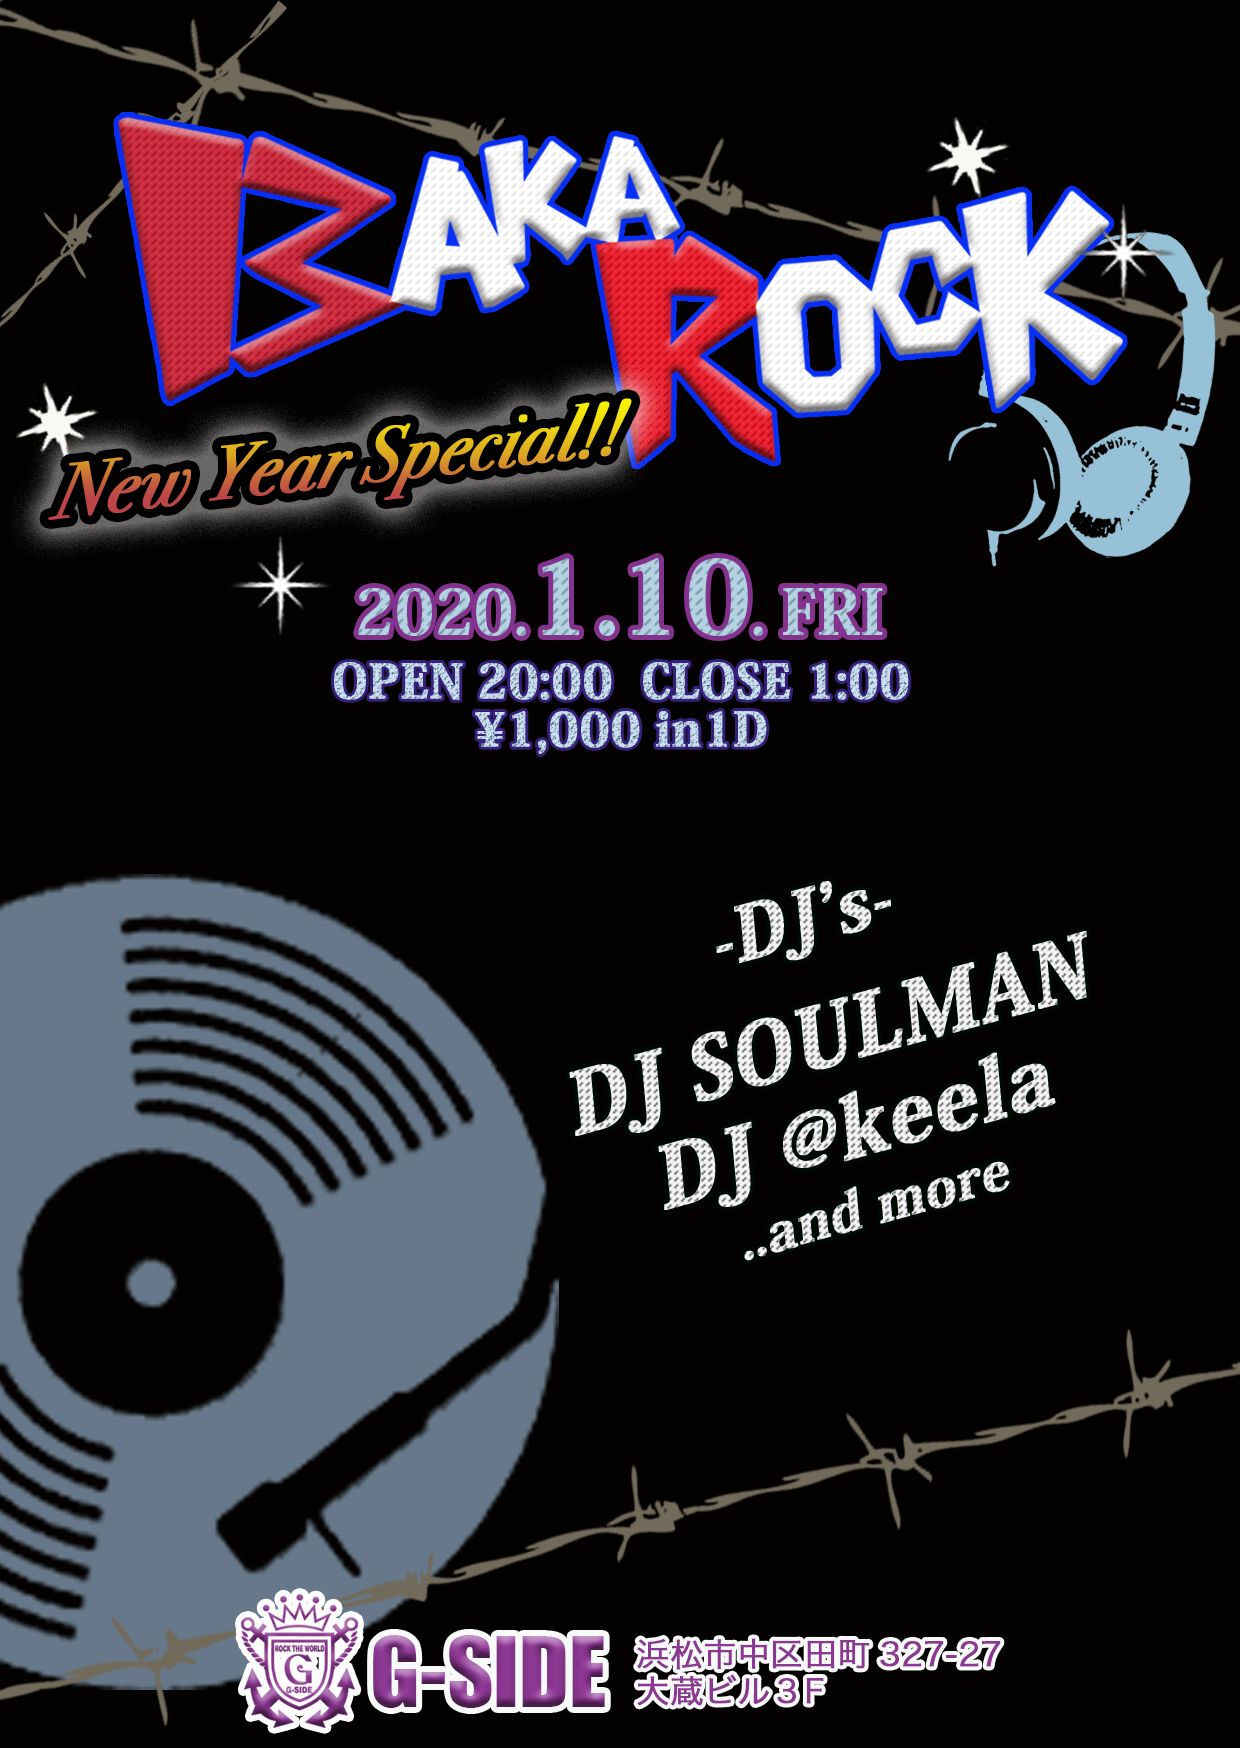 BAKA ROCK New Year Special!